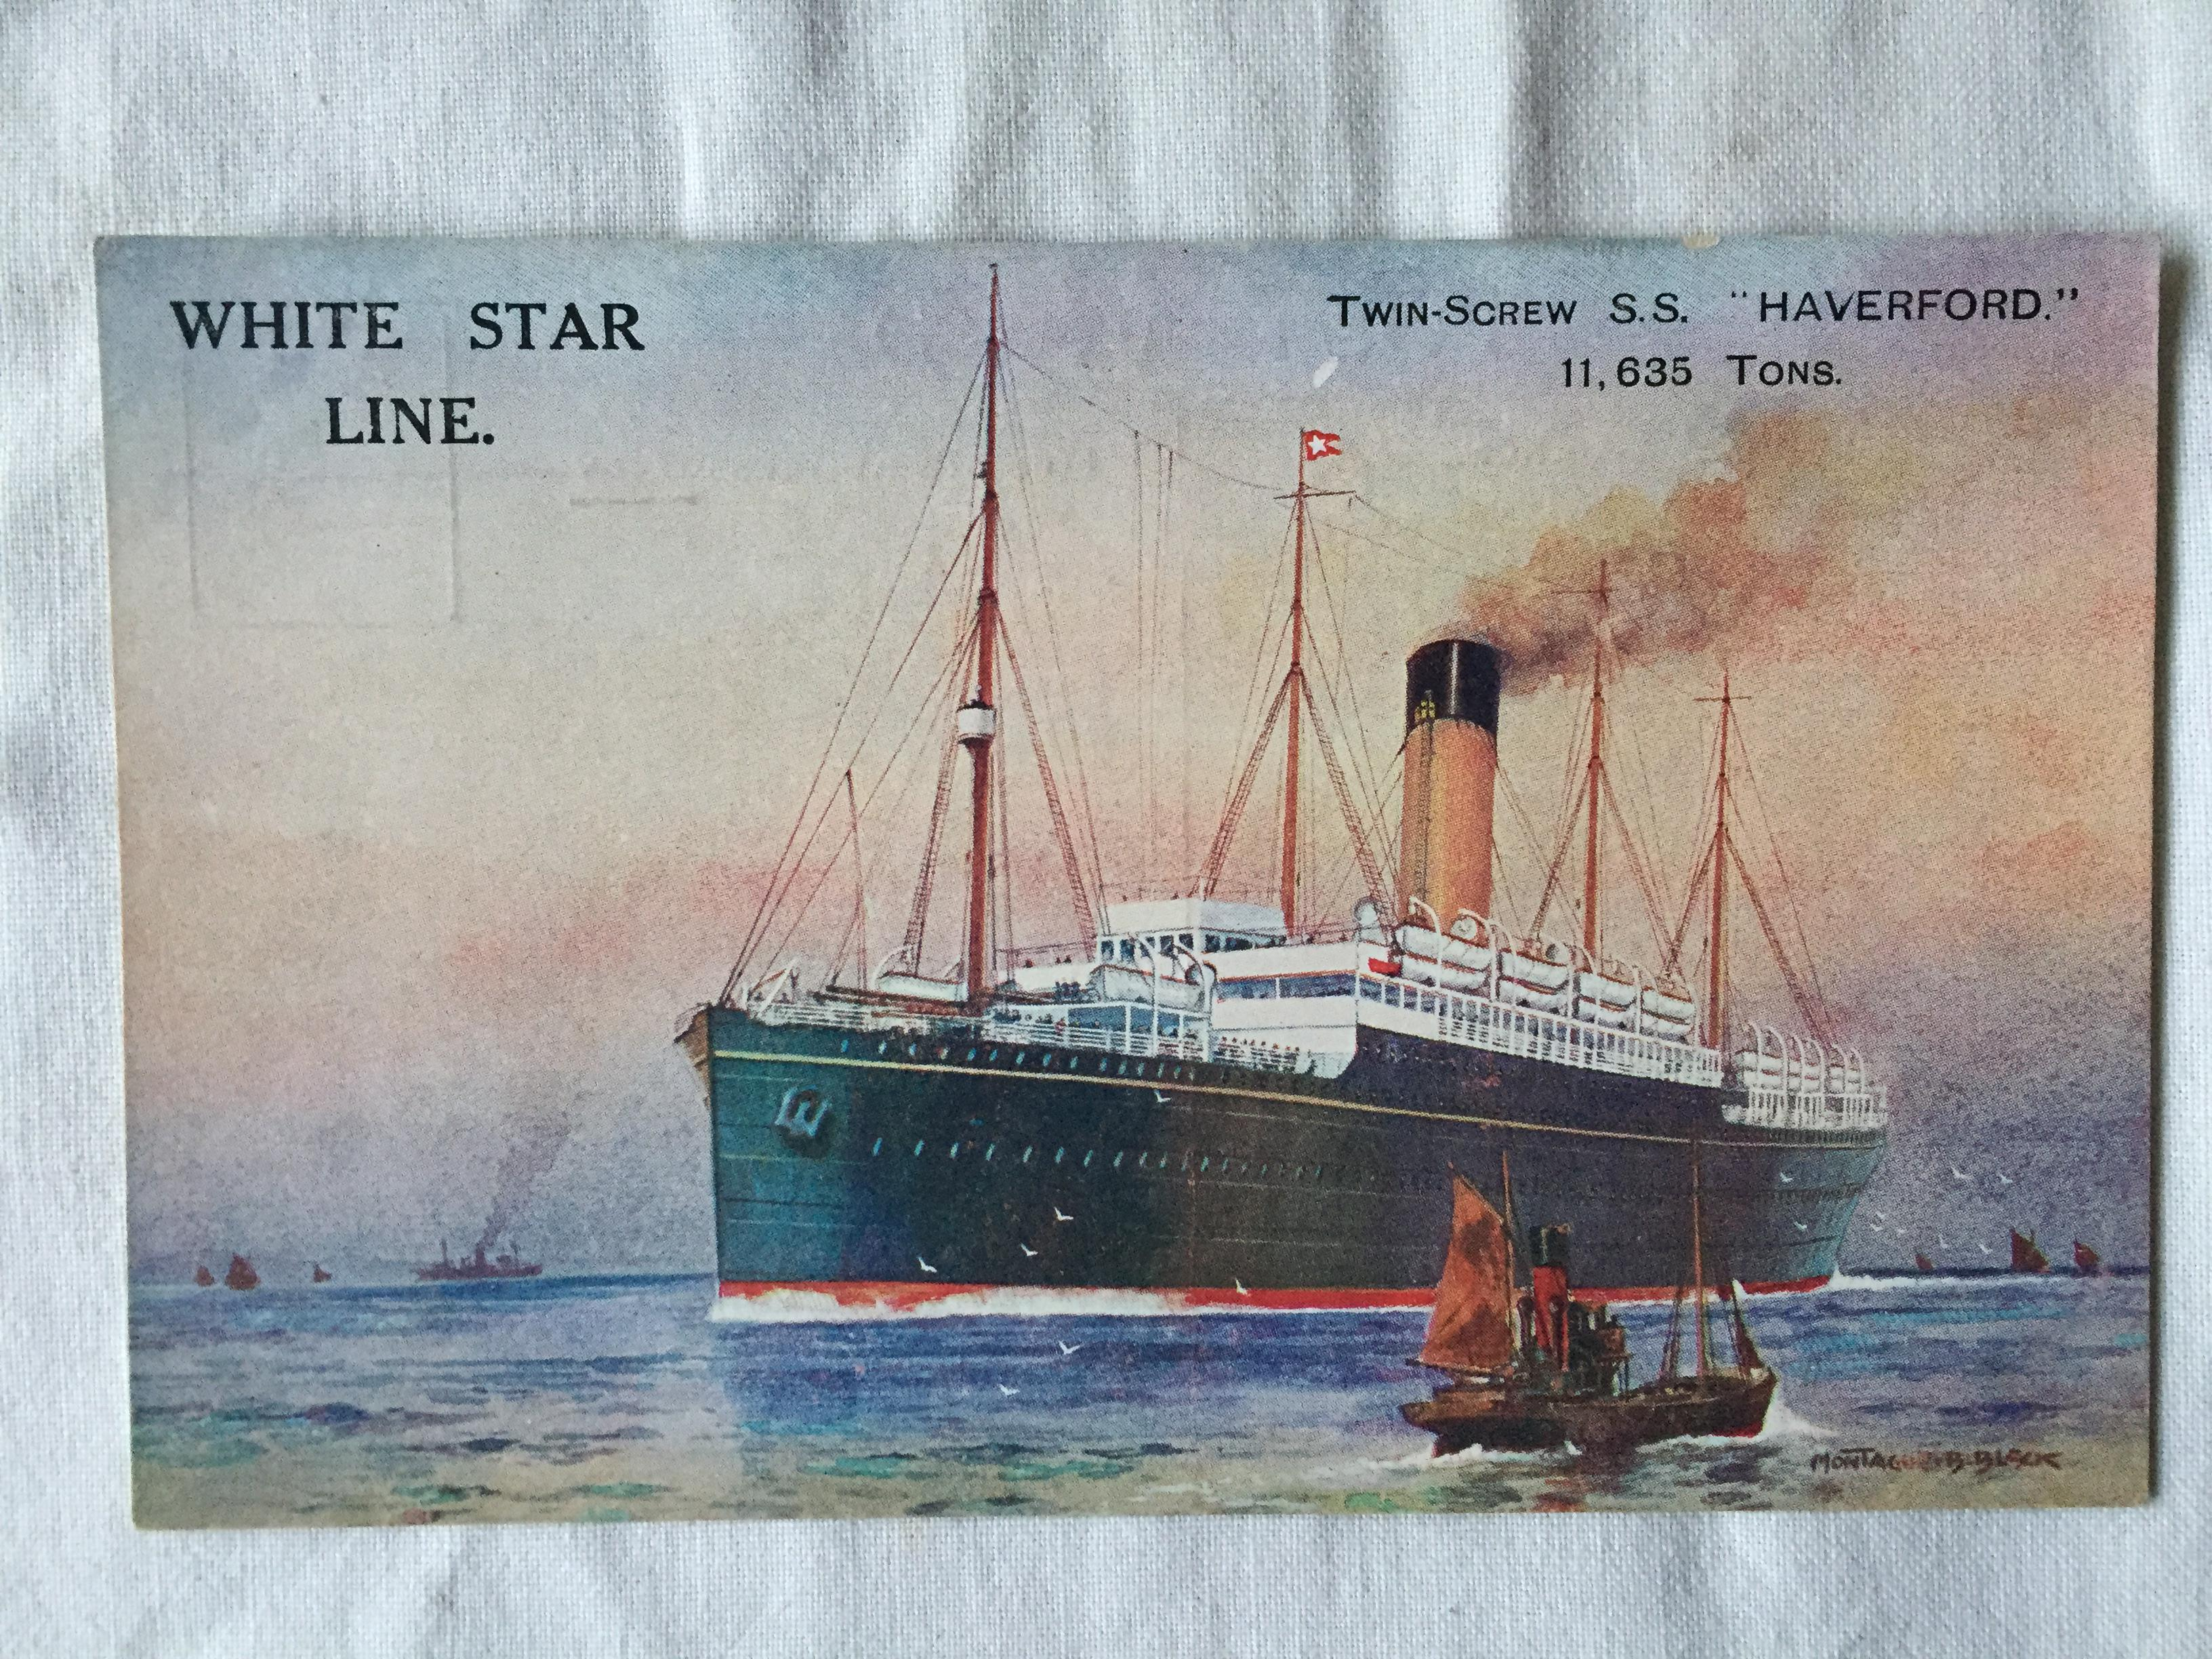 UNUSED COLOUR POSTCARD FROM THE SS HAVERFORD FROM THE WHITE STAR LINE